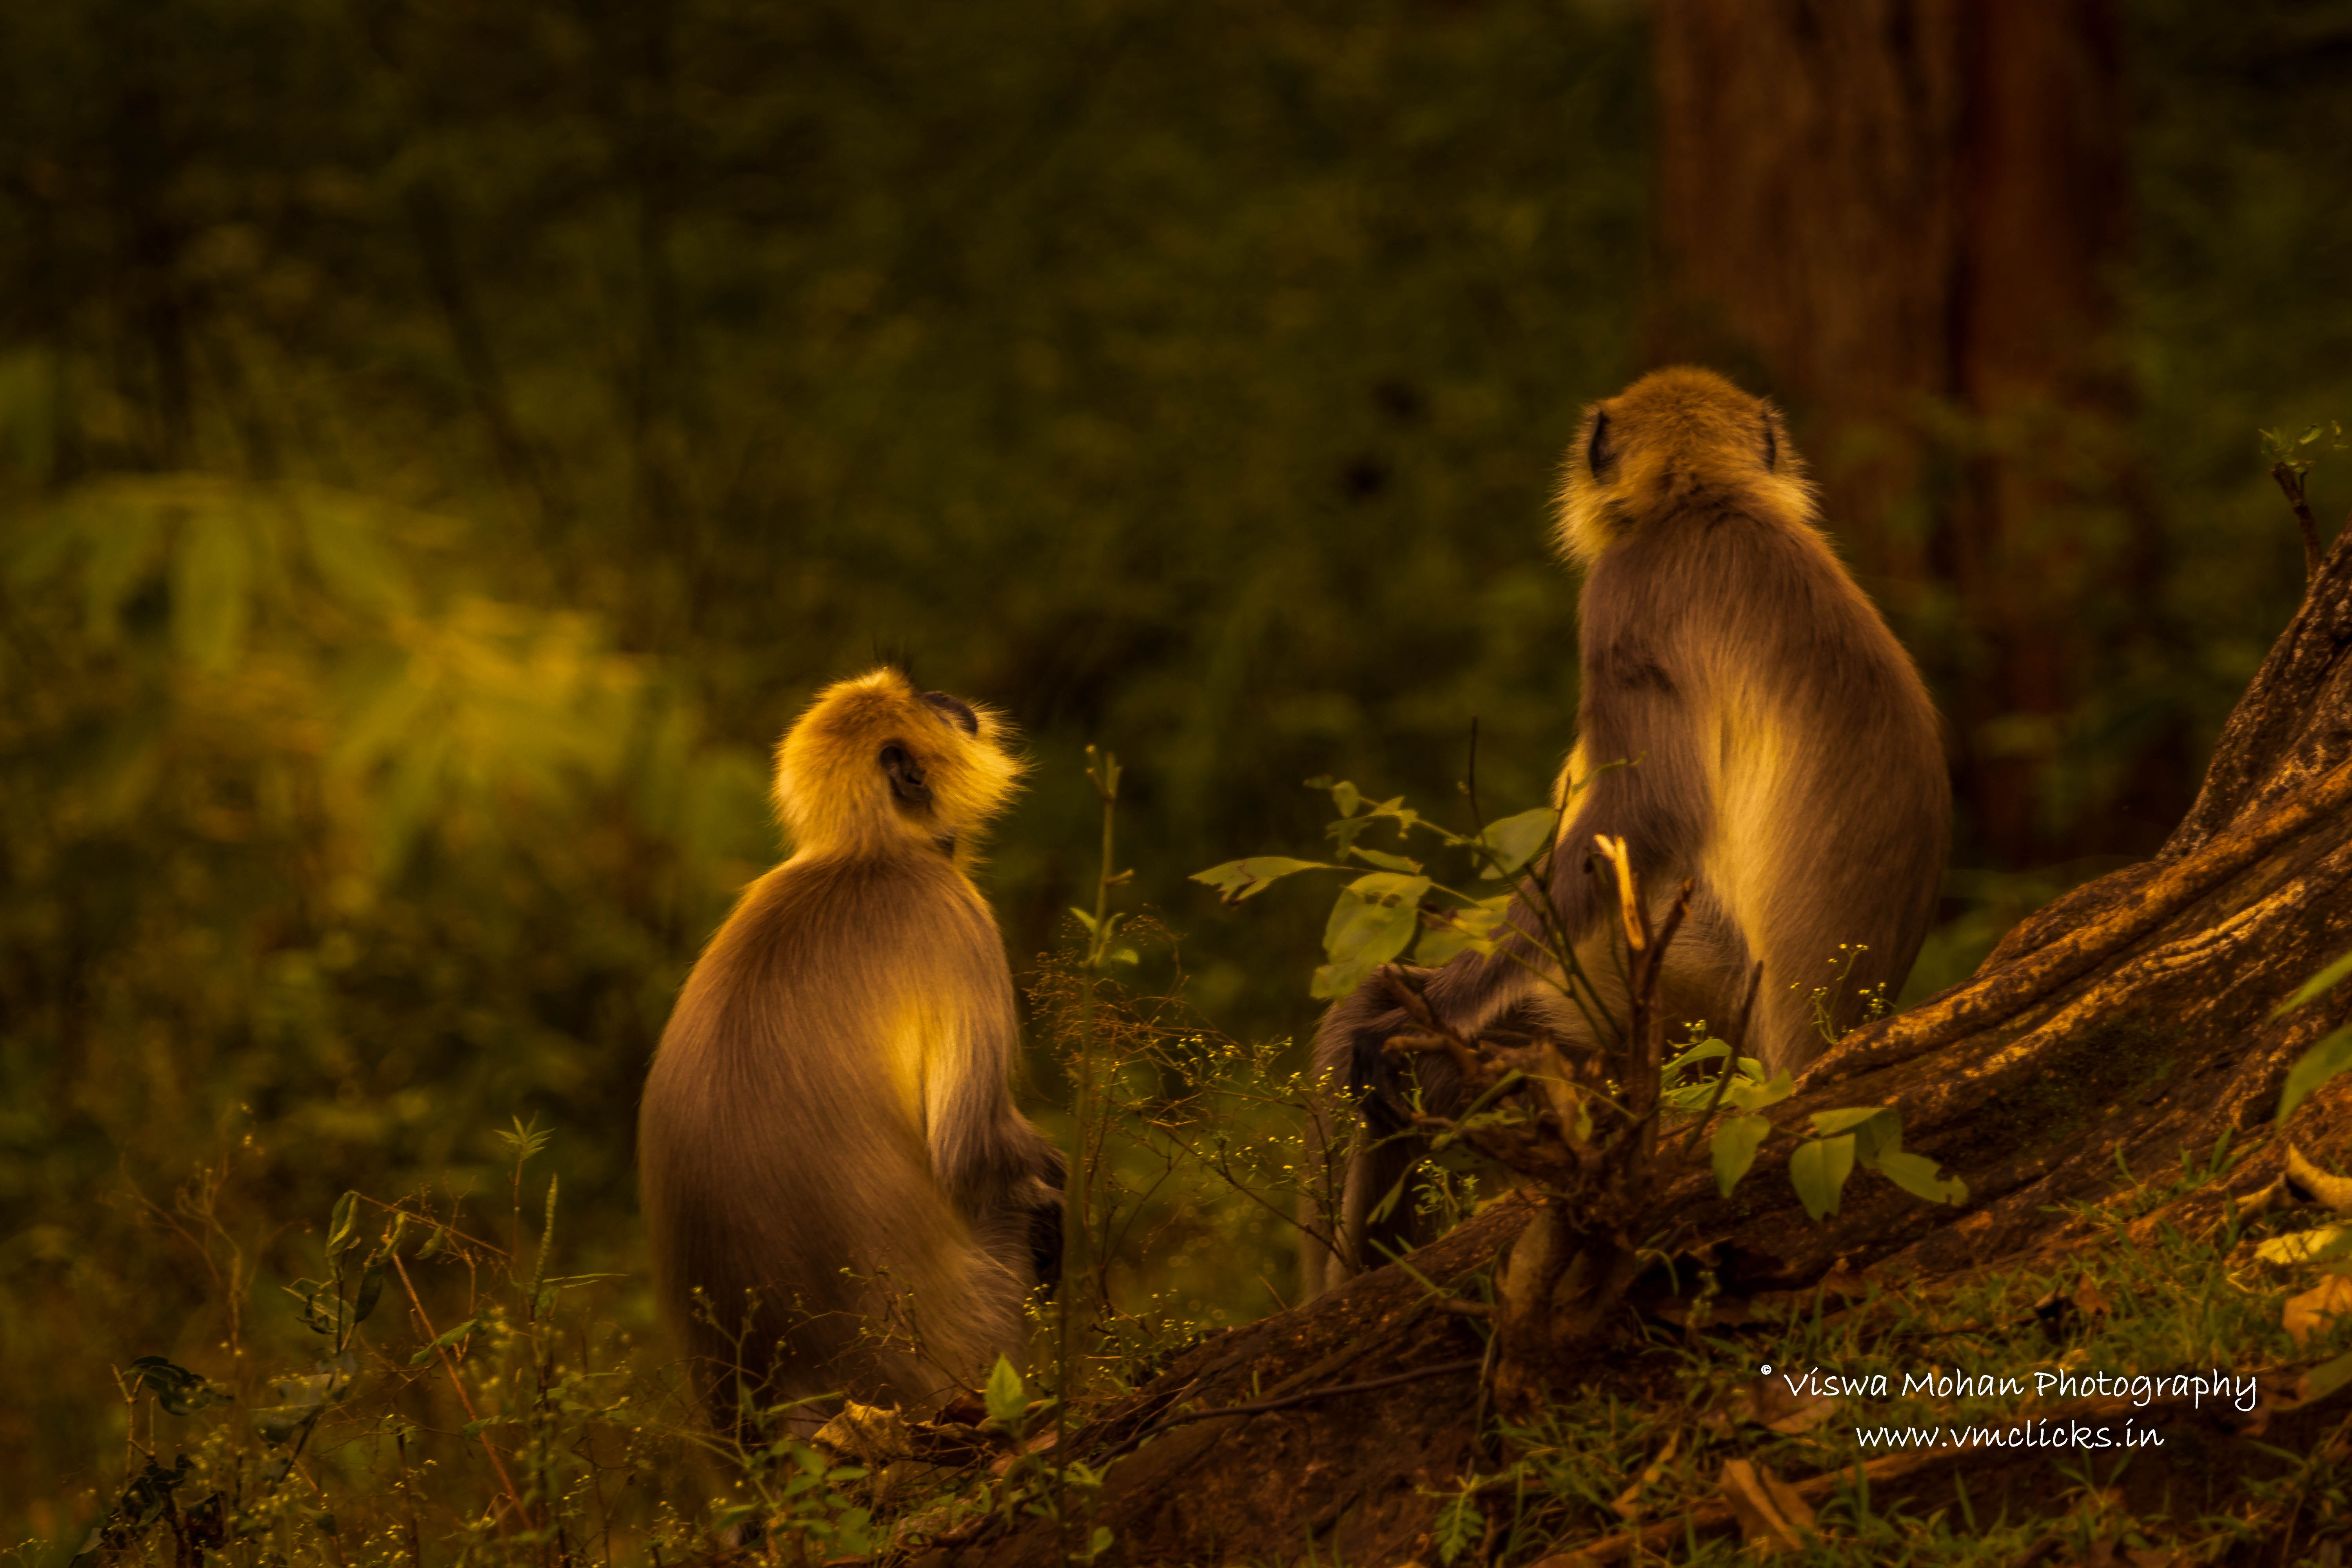 Langurs under the rays of sun (The Light)